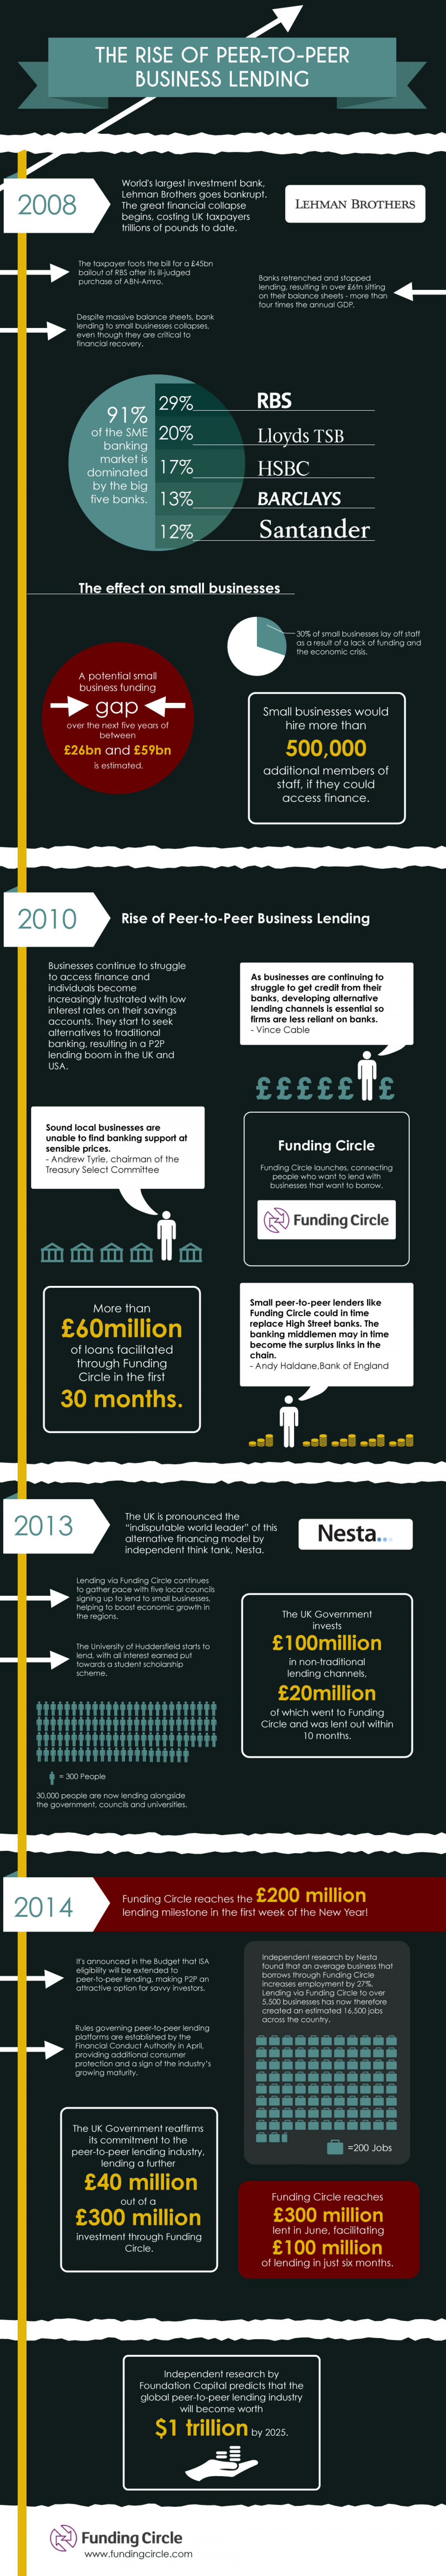 The Rise of Peer-to-Peer Business Fundraising Infographic